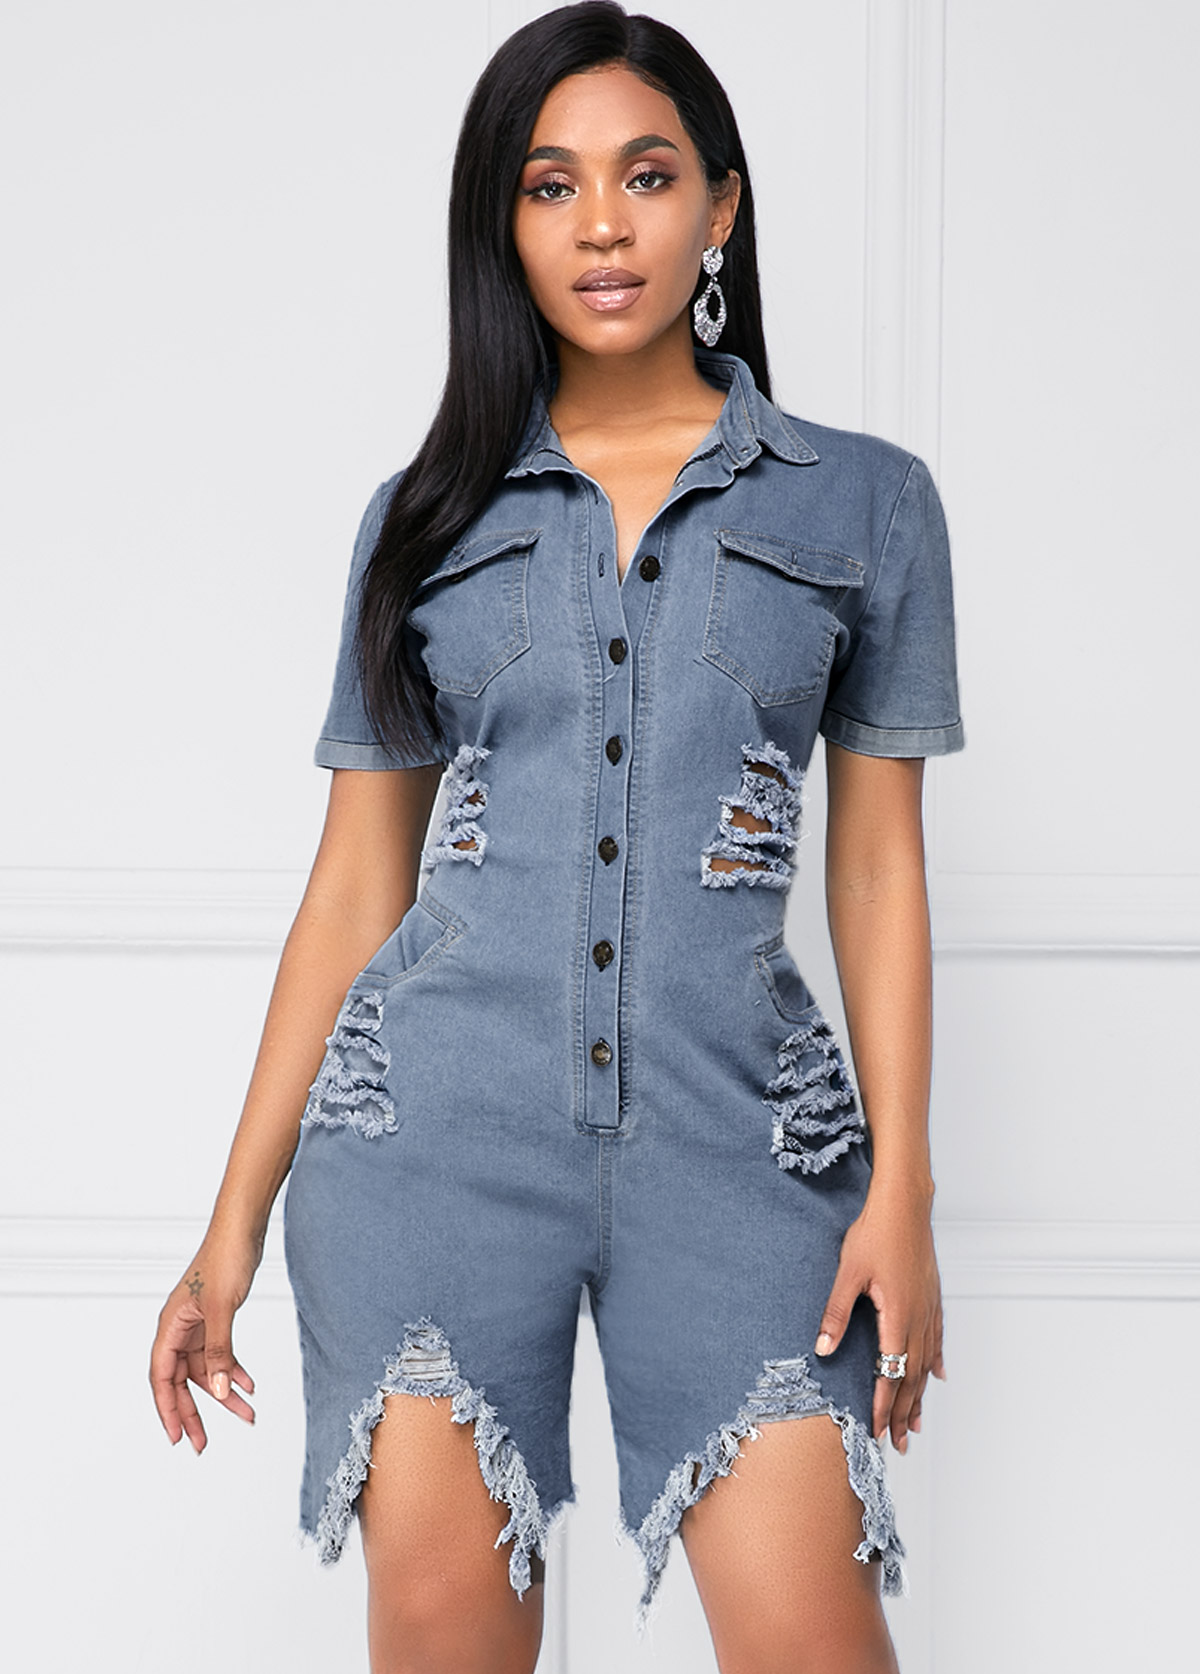 Shredded Turndown Collar Chest Pocket Button Up Denim Romper